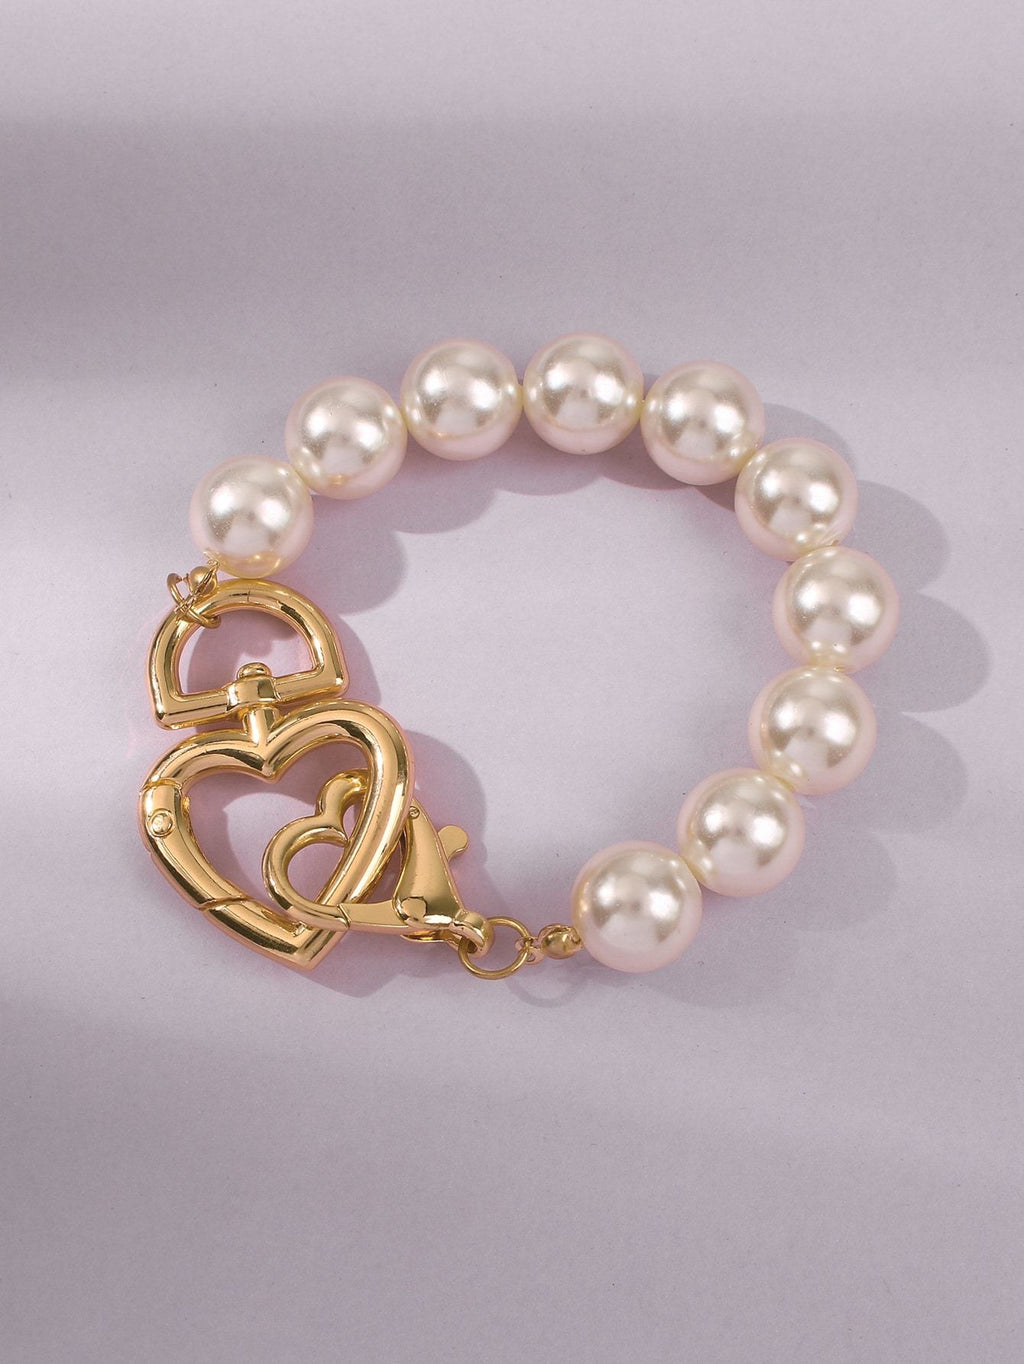 Faux Pearl Heart Decor Bracelet Shop n Save Pakistan